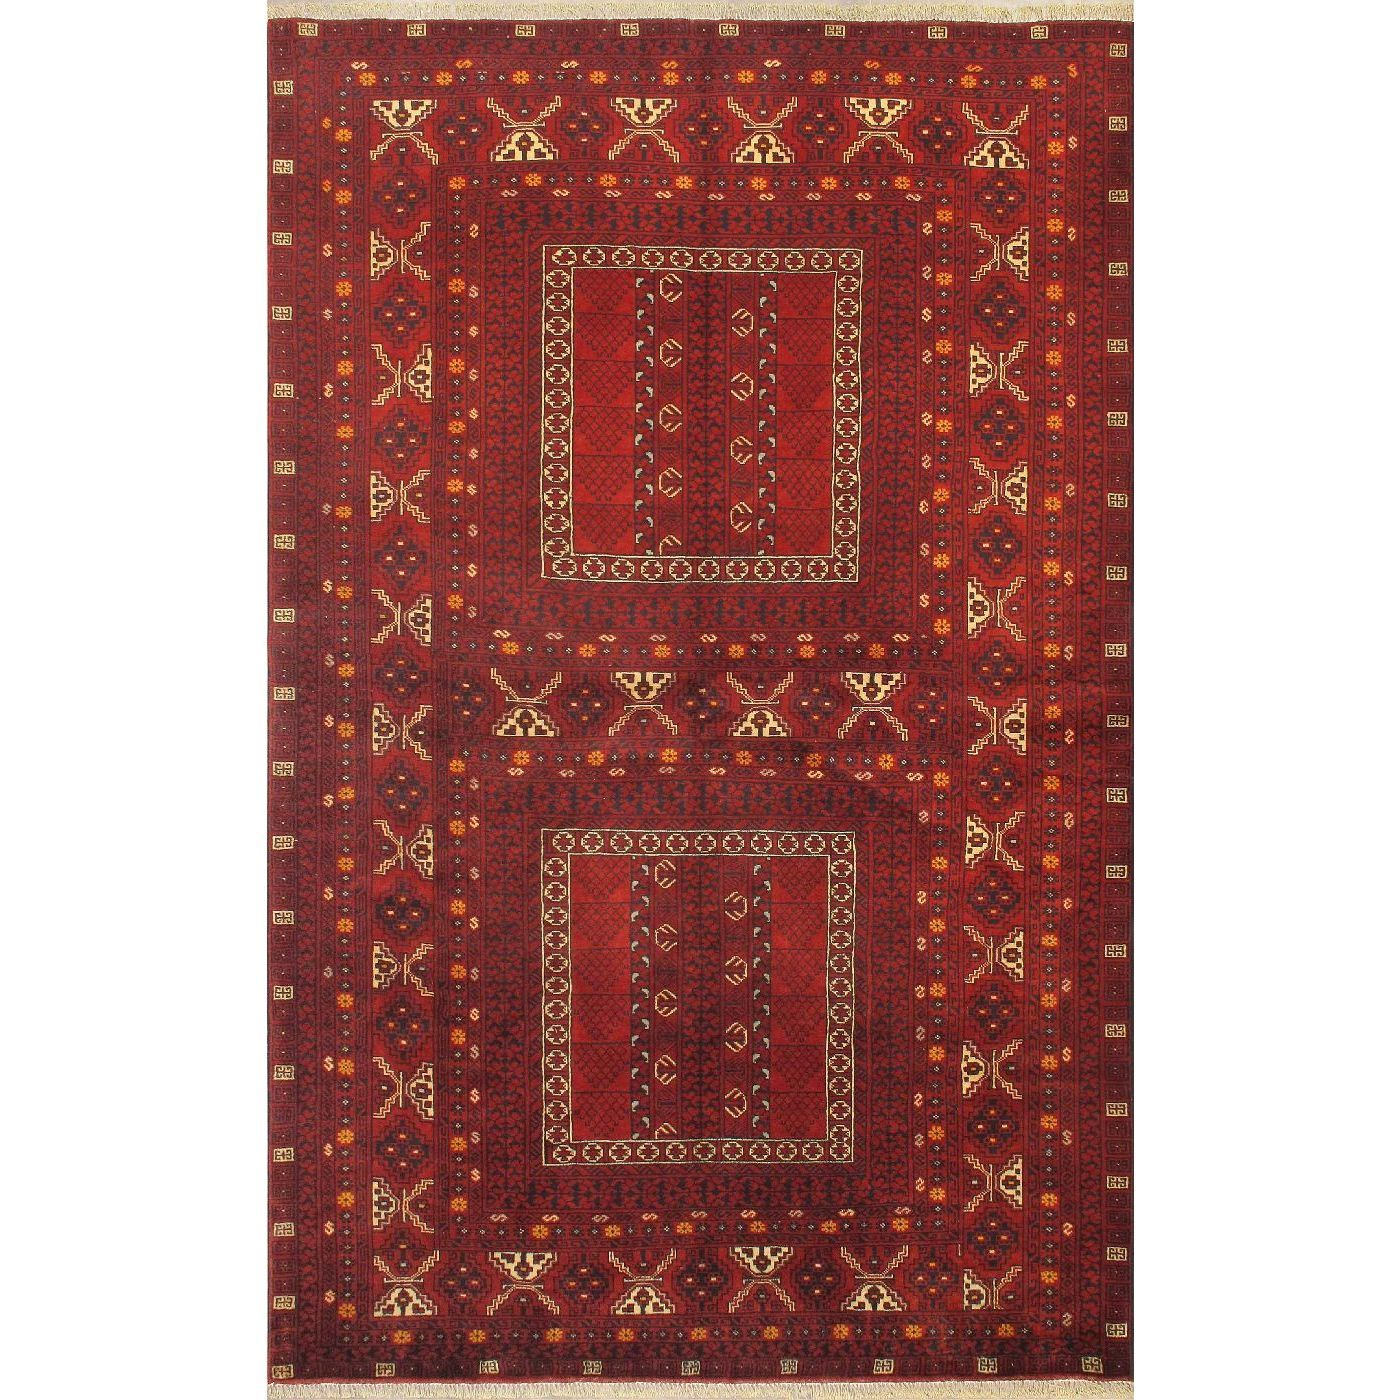 ecarpetgallery Hand-knotted Finest Khal Mohammadi Red Wool Rug (5'3 x 8'3) (Red Light Burgundy Rug (5' x 8')), Black, Size 5' x 8' (Cotton, Oriental)